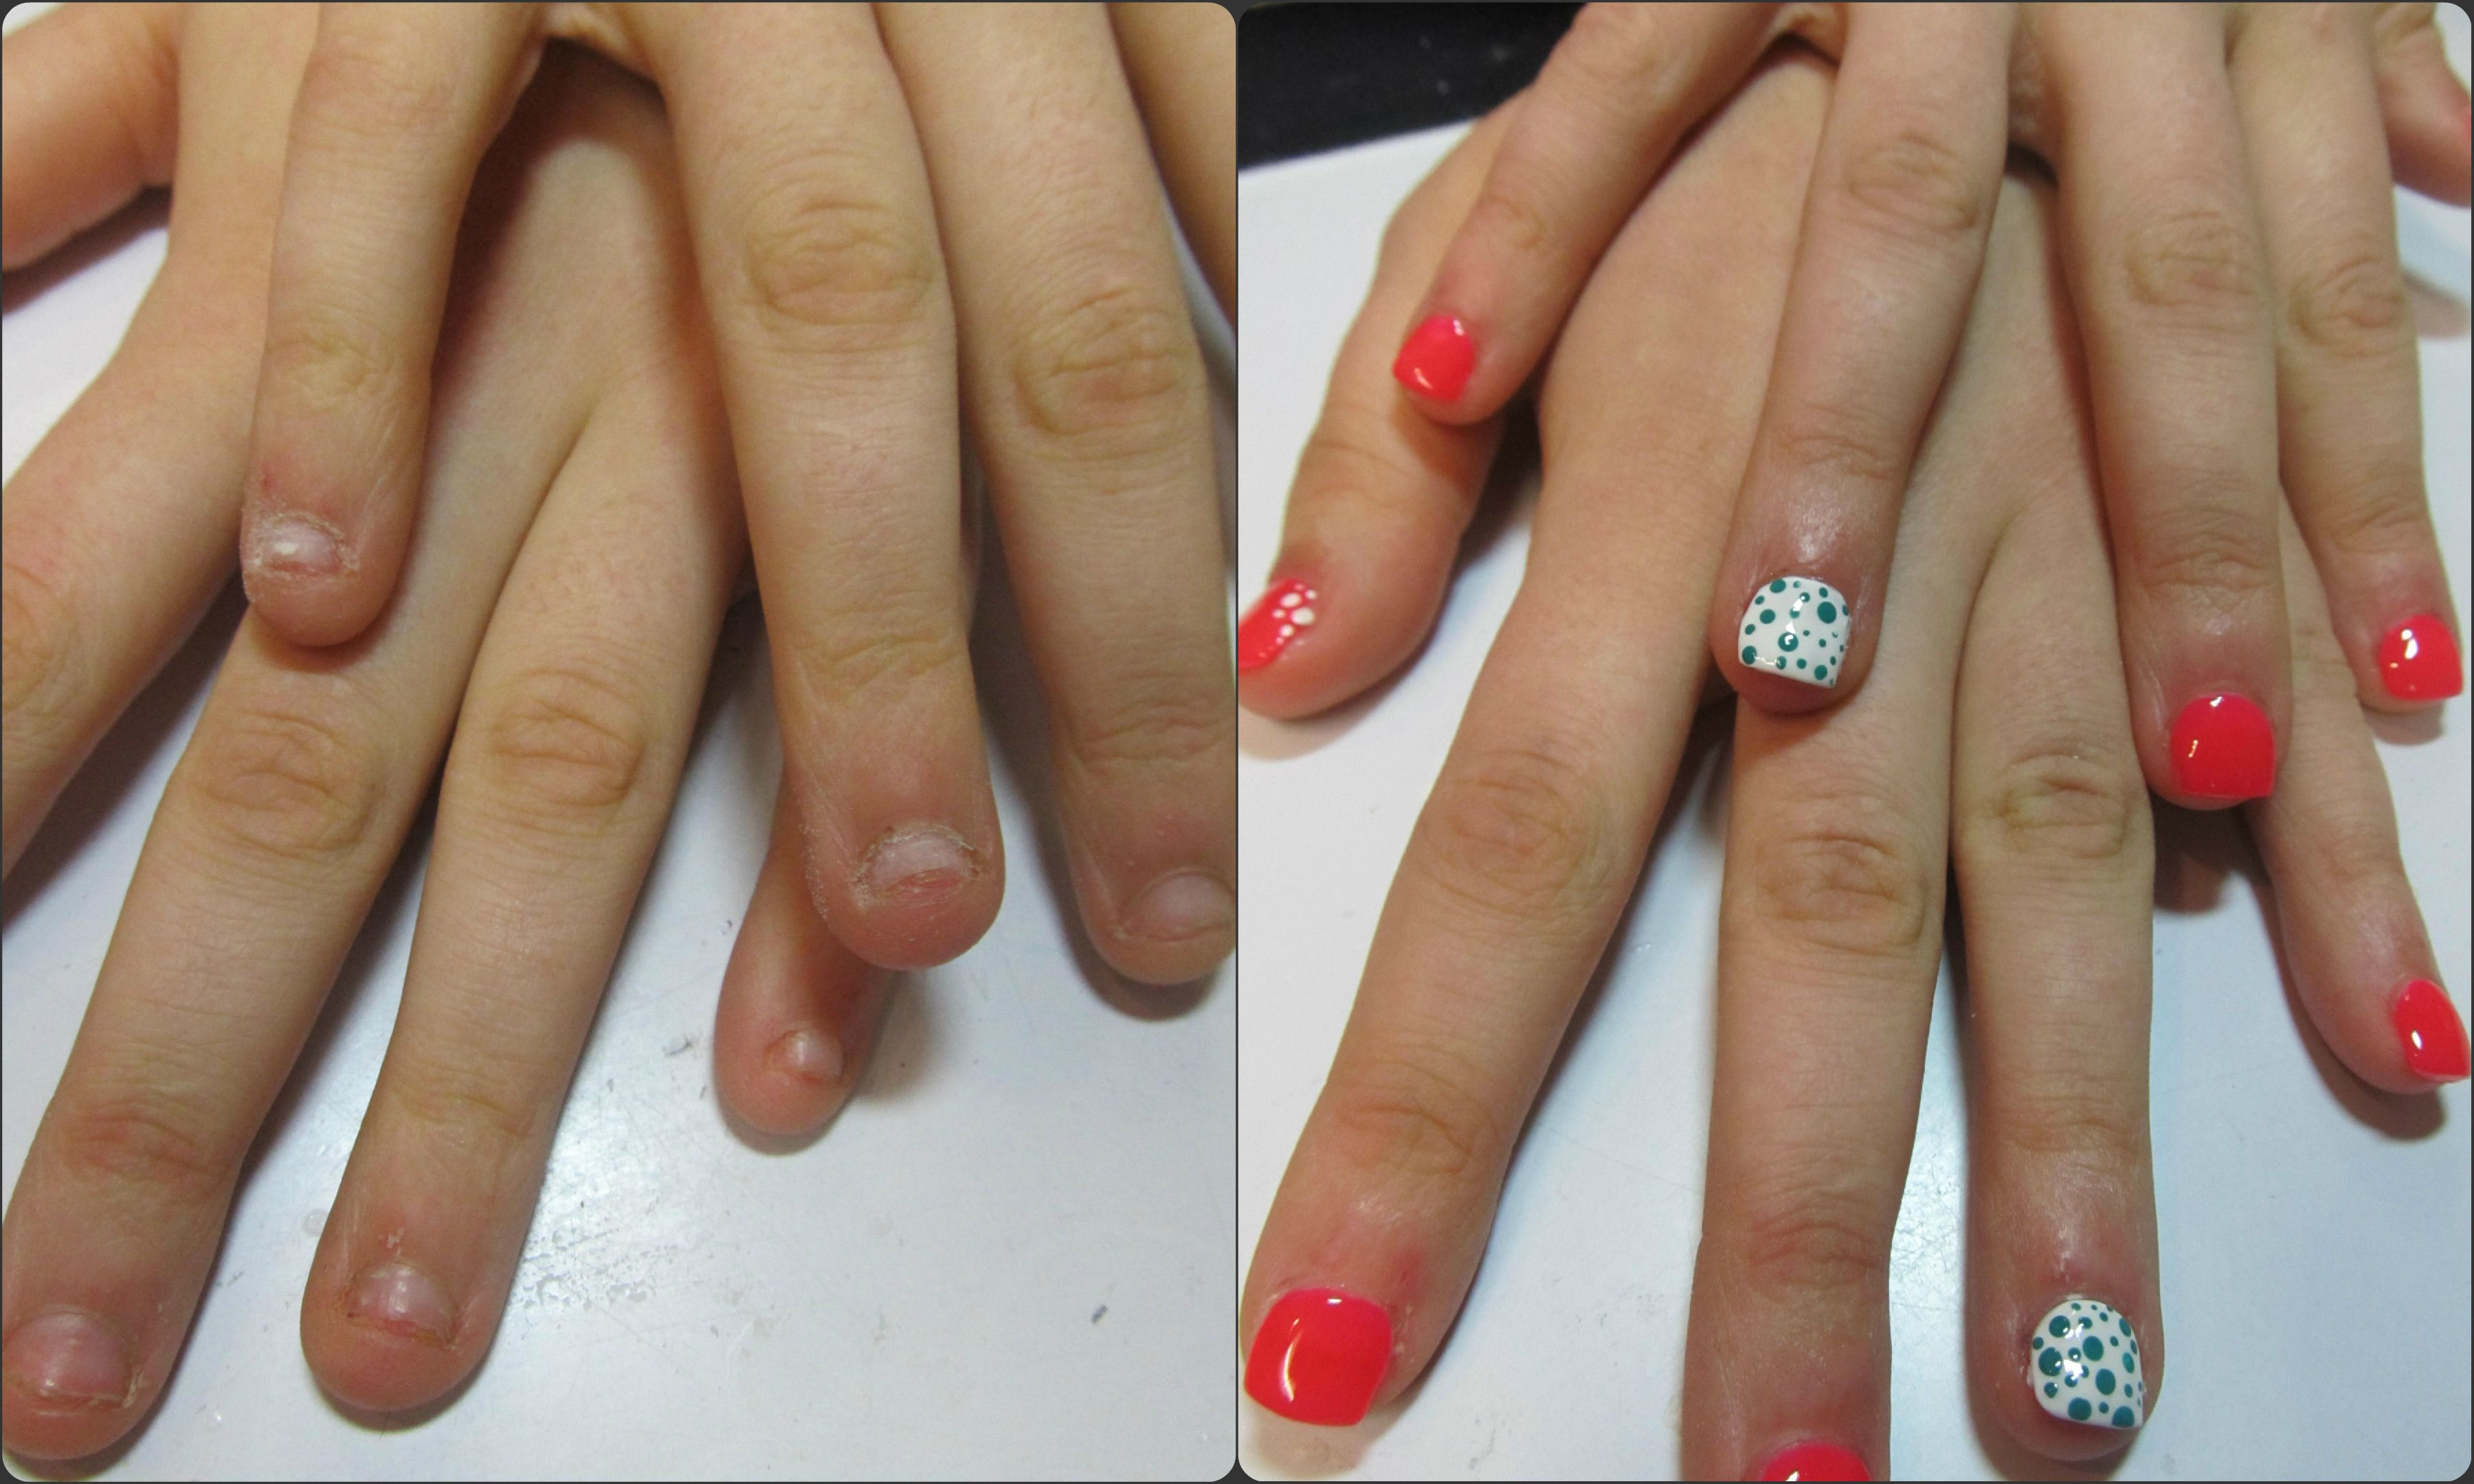 short and bitten nails before and after lengthening with